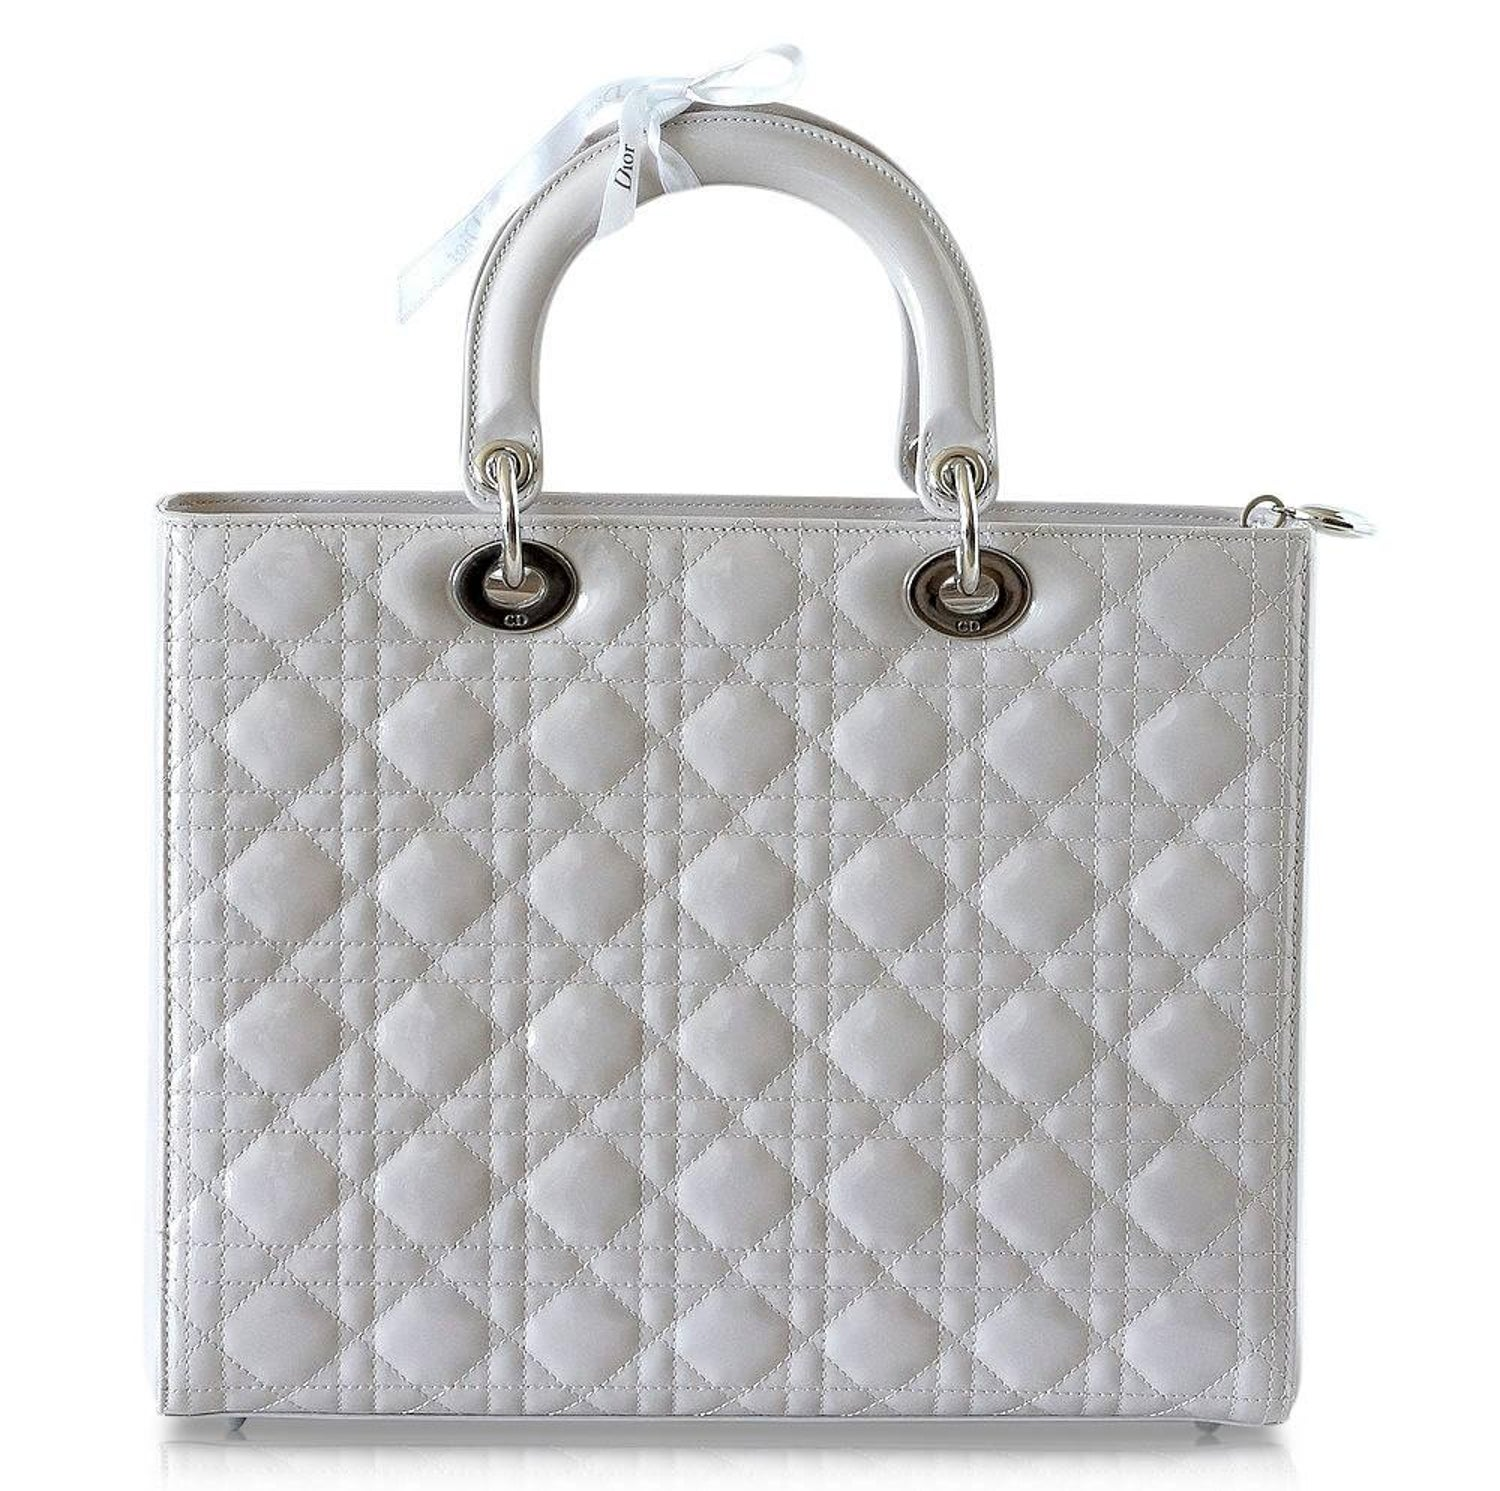 6b1612cb34 Christian Dior Lady Dior Pearl Grey Quilted Cannage Large New w/ Box For  Sale at 1stdibs